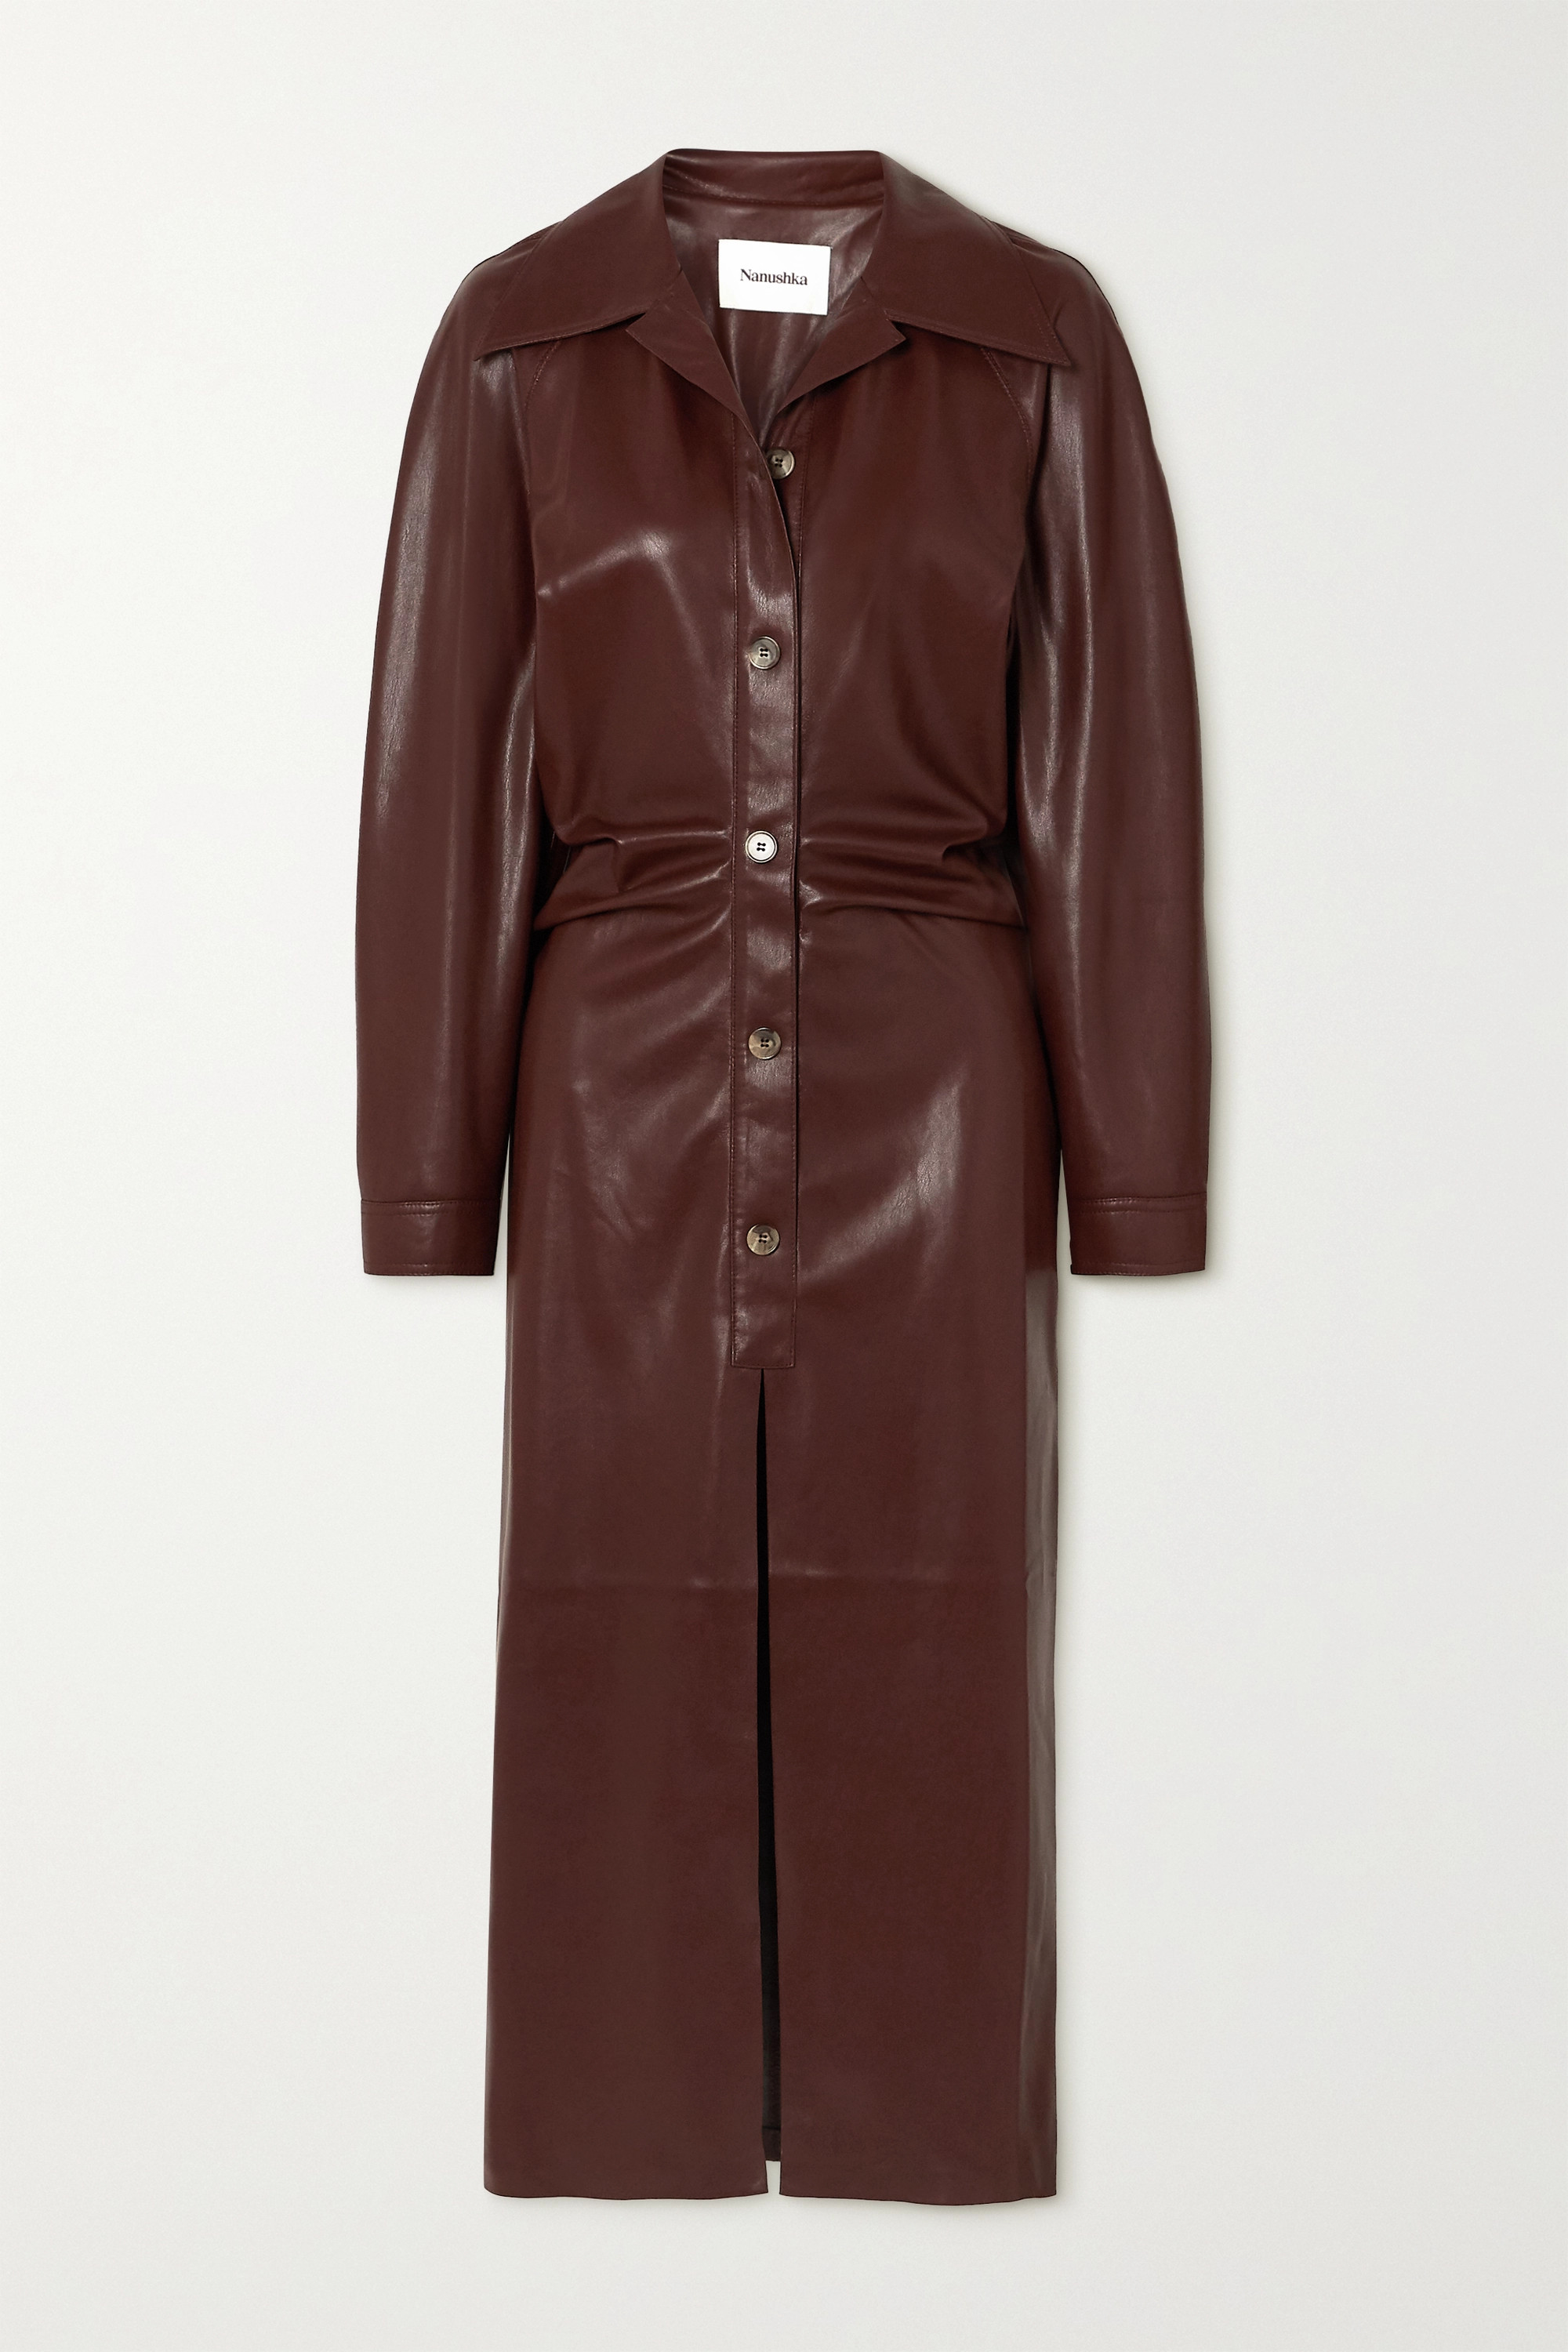 Nanushka Sami ruched vegan stretch-leather shirt dress